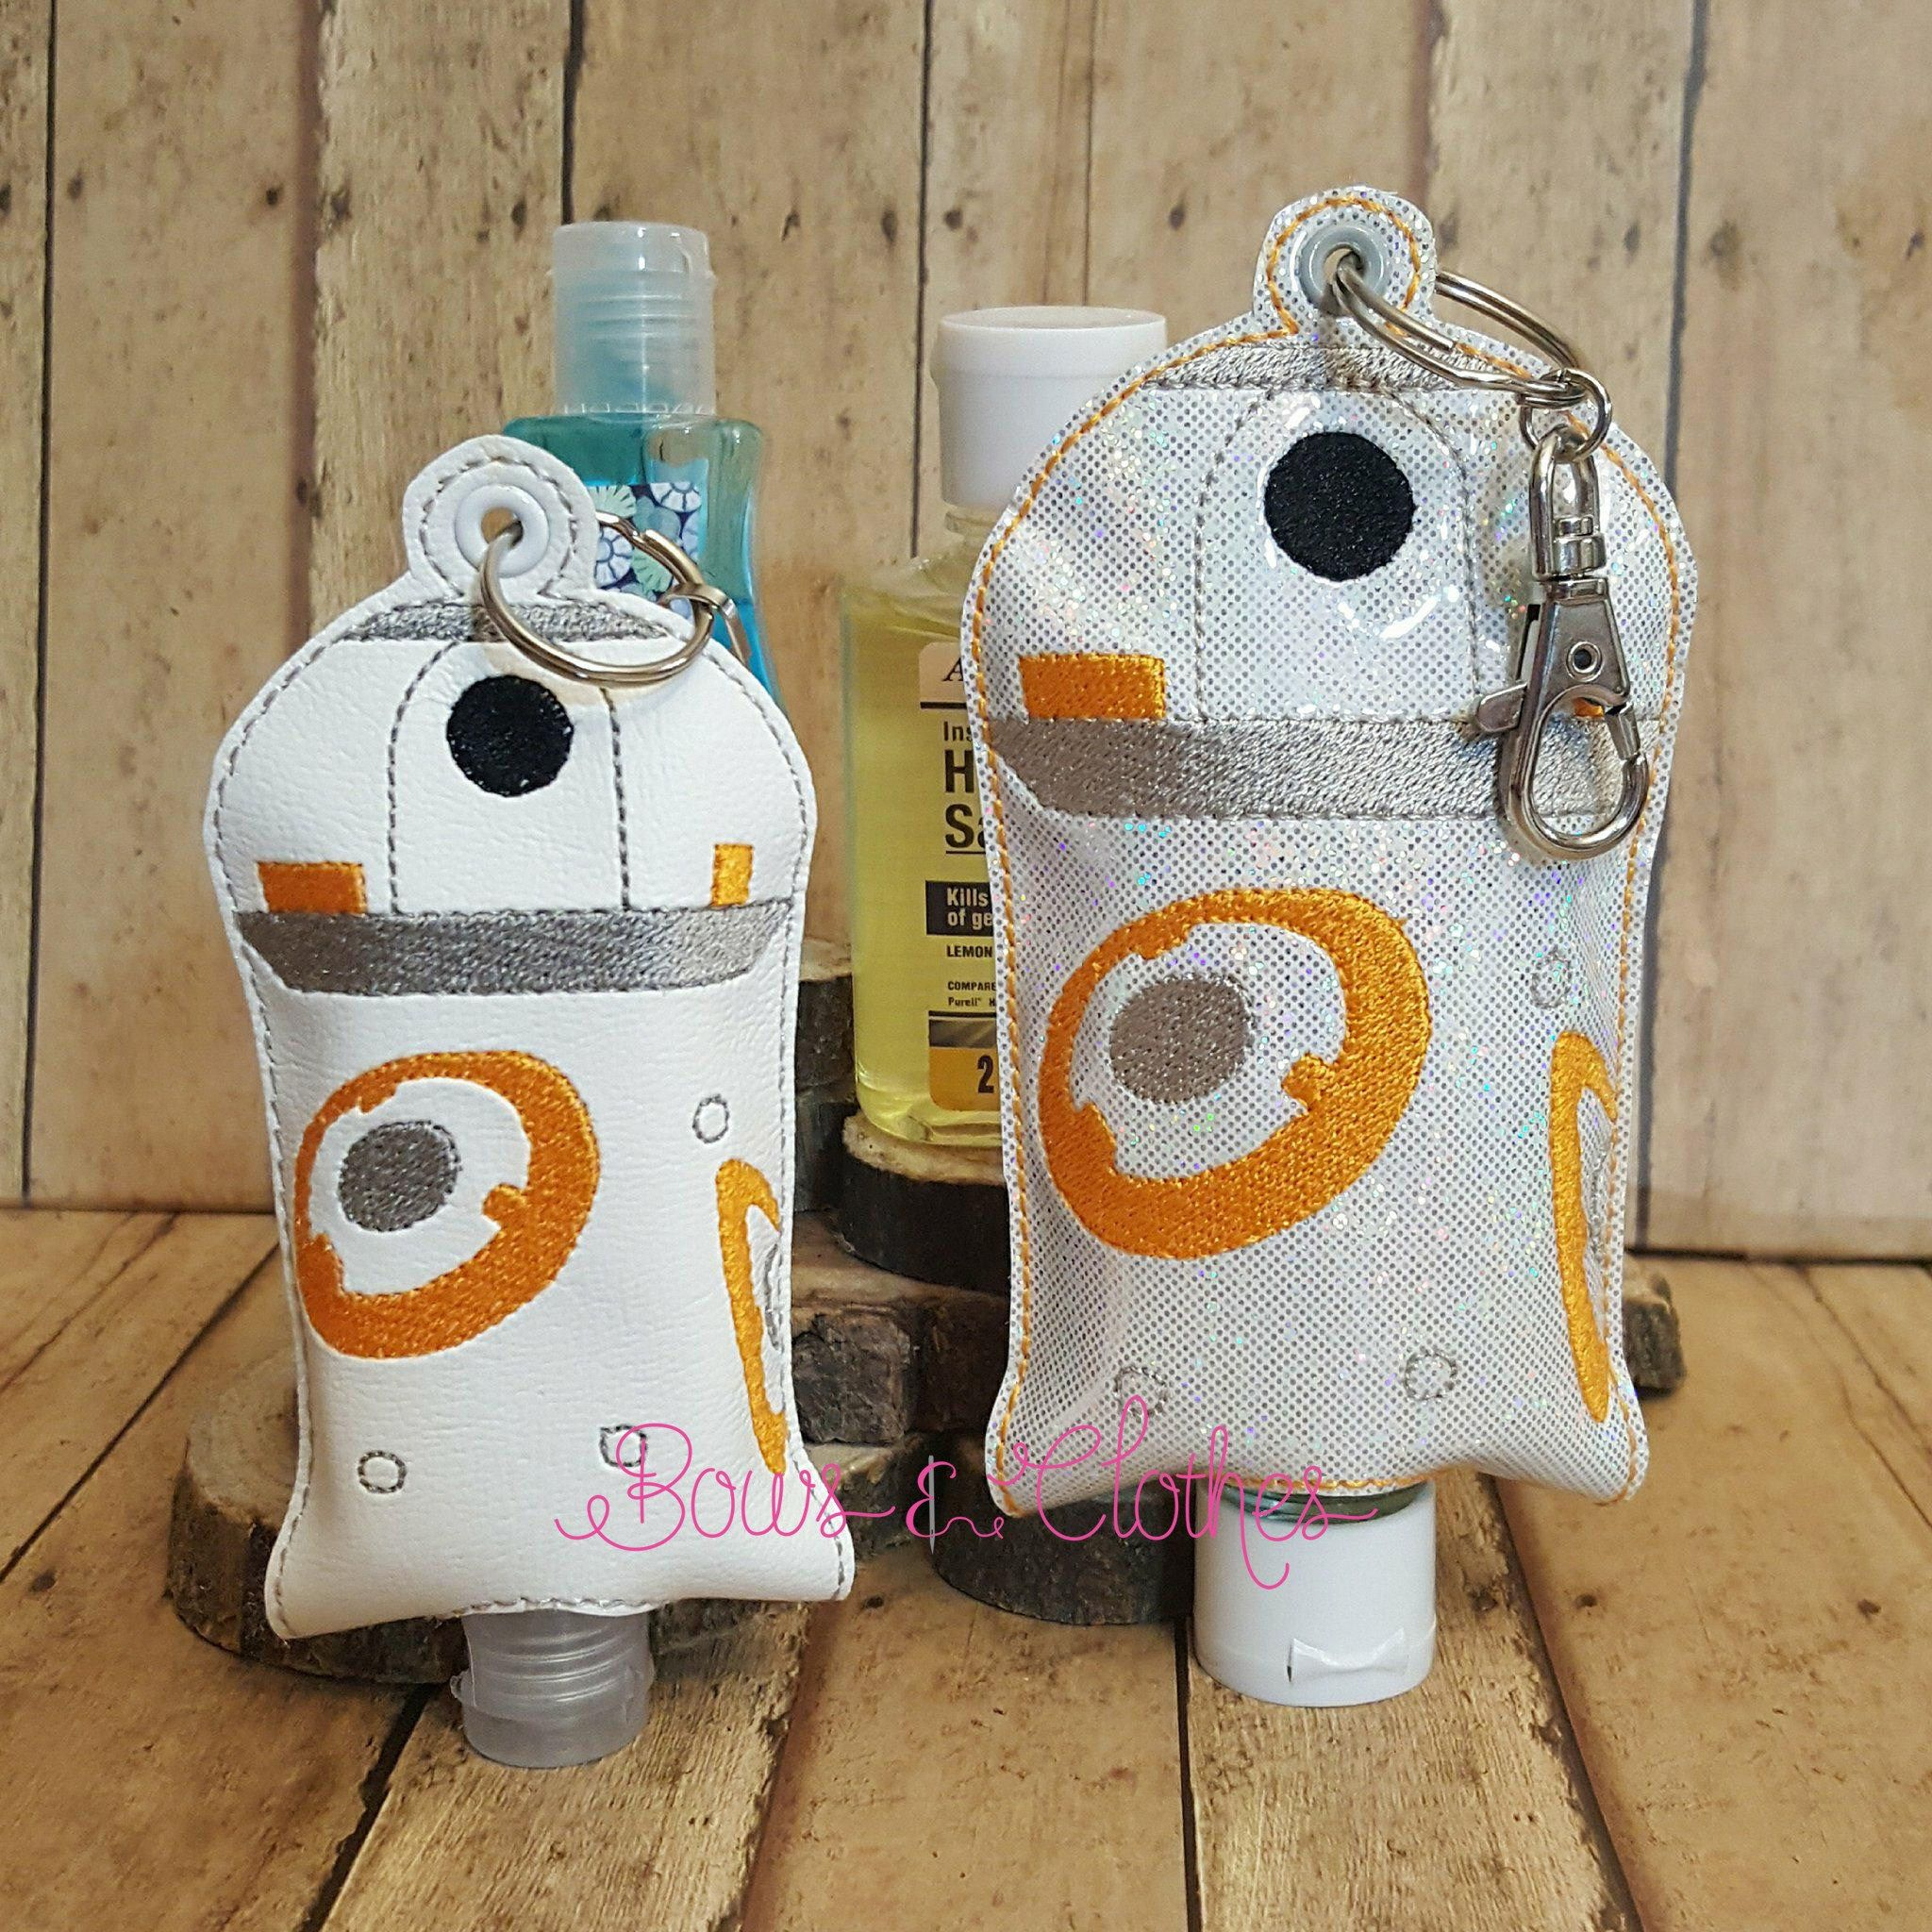 Space B Robot Open Tab Hand Sanitizer Machine Embroidery Designs